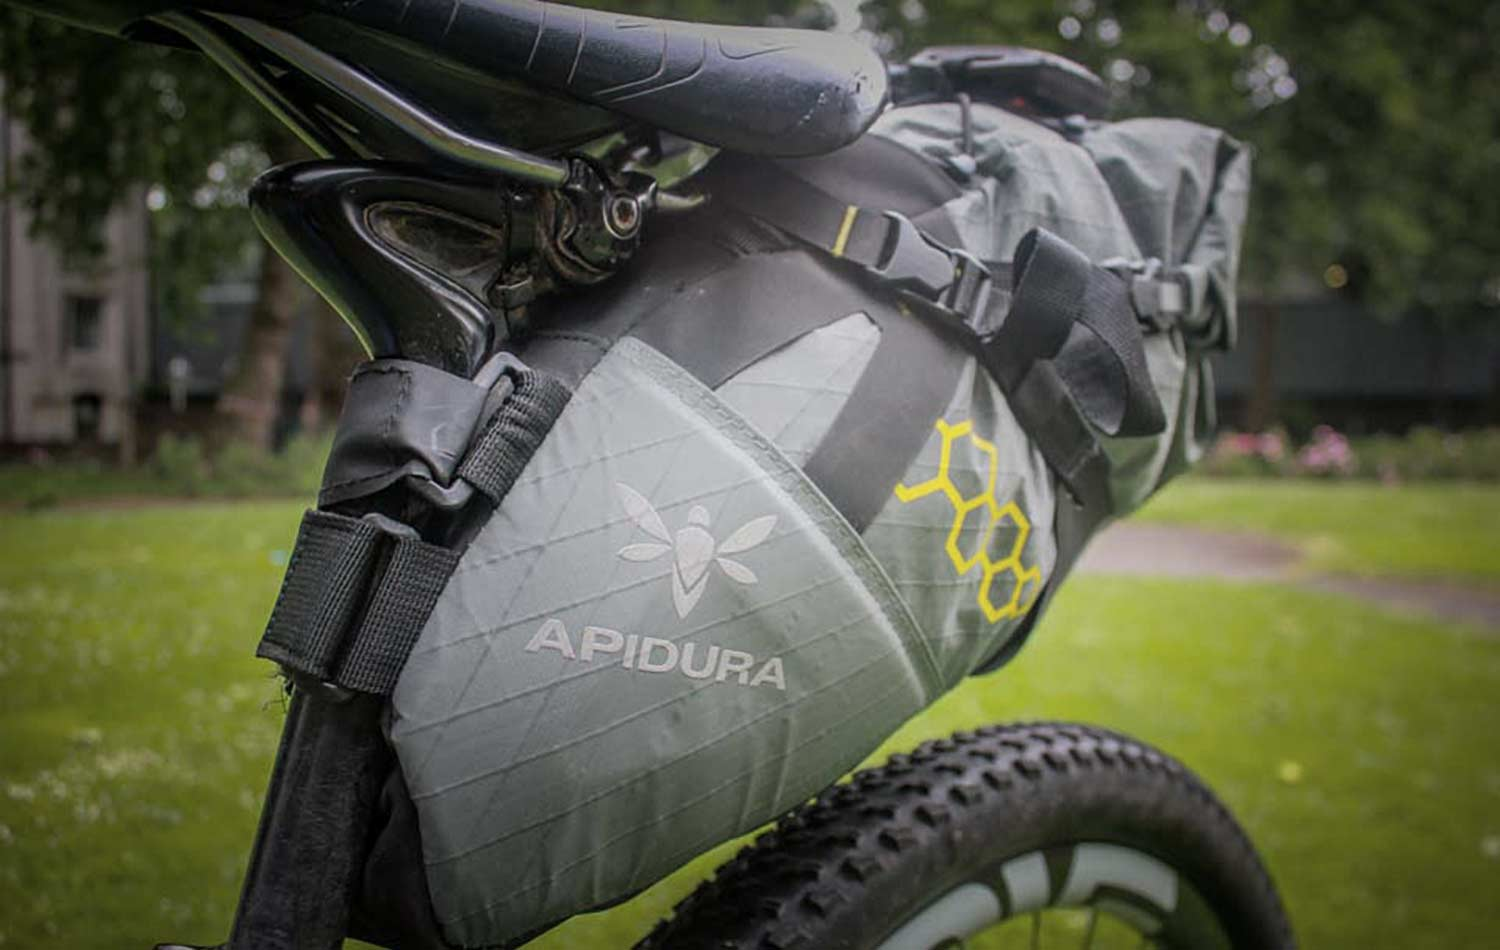 apidura backcountry saddle pack on lee craigie bike for tour divide